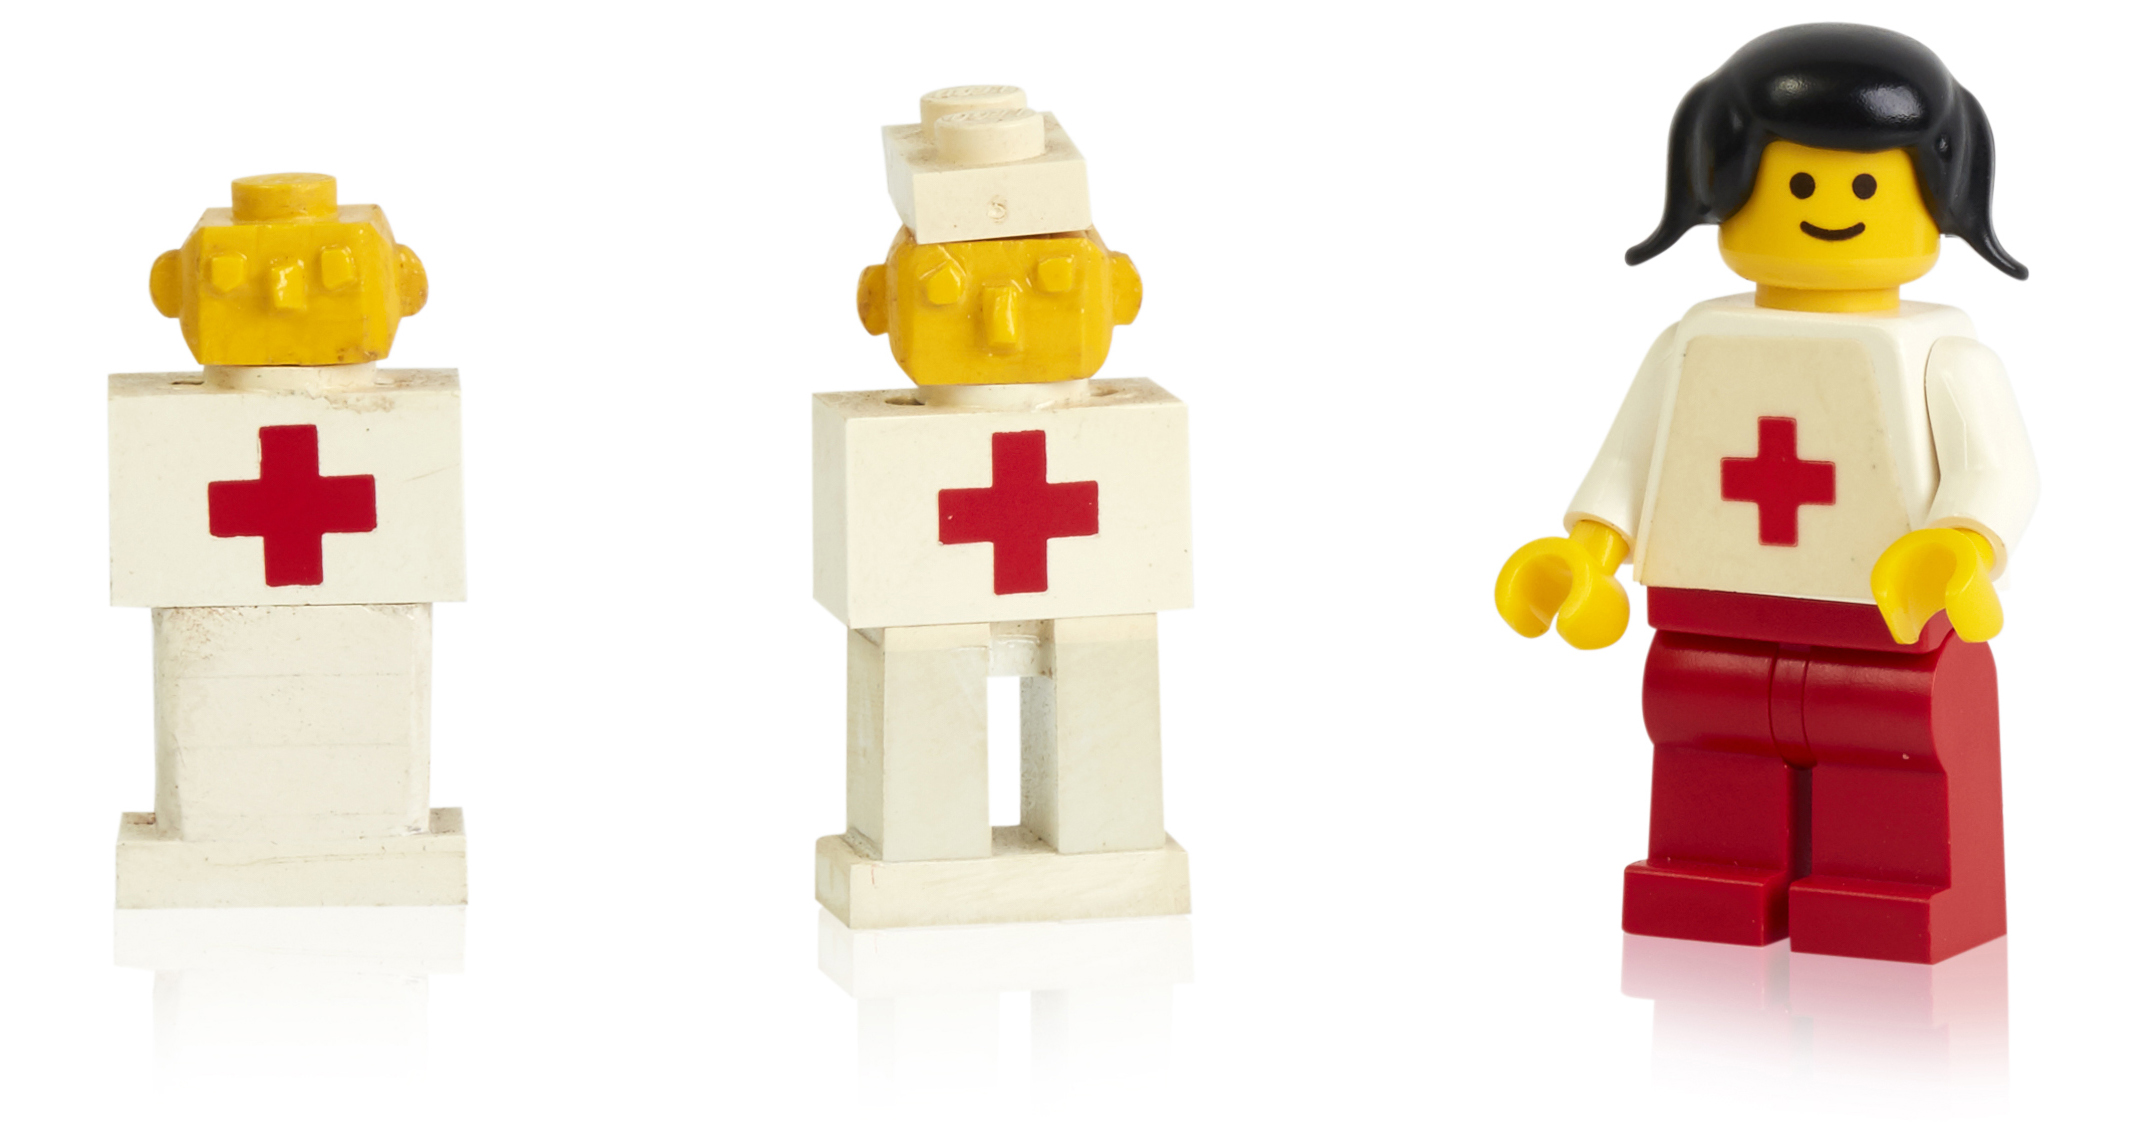 early-prototypes-and-first-doctor-minifigure.jpg